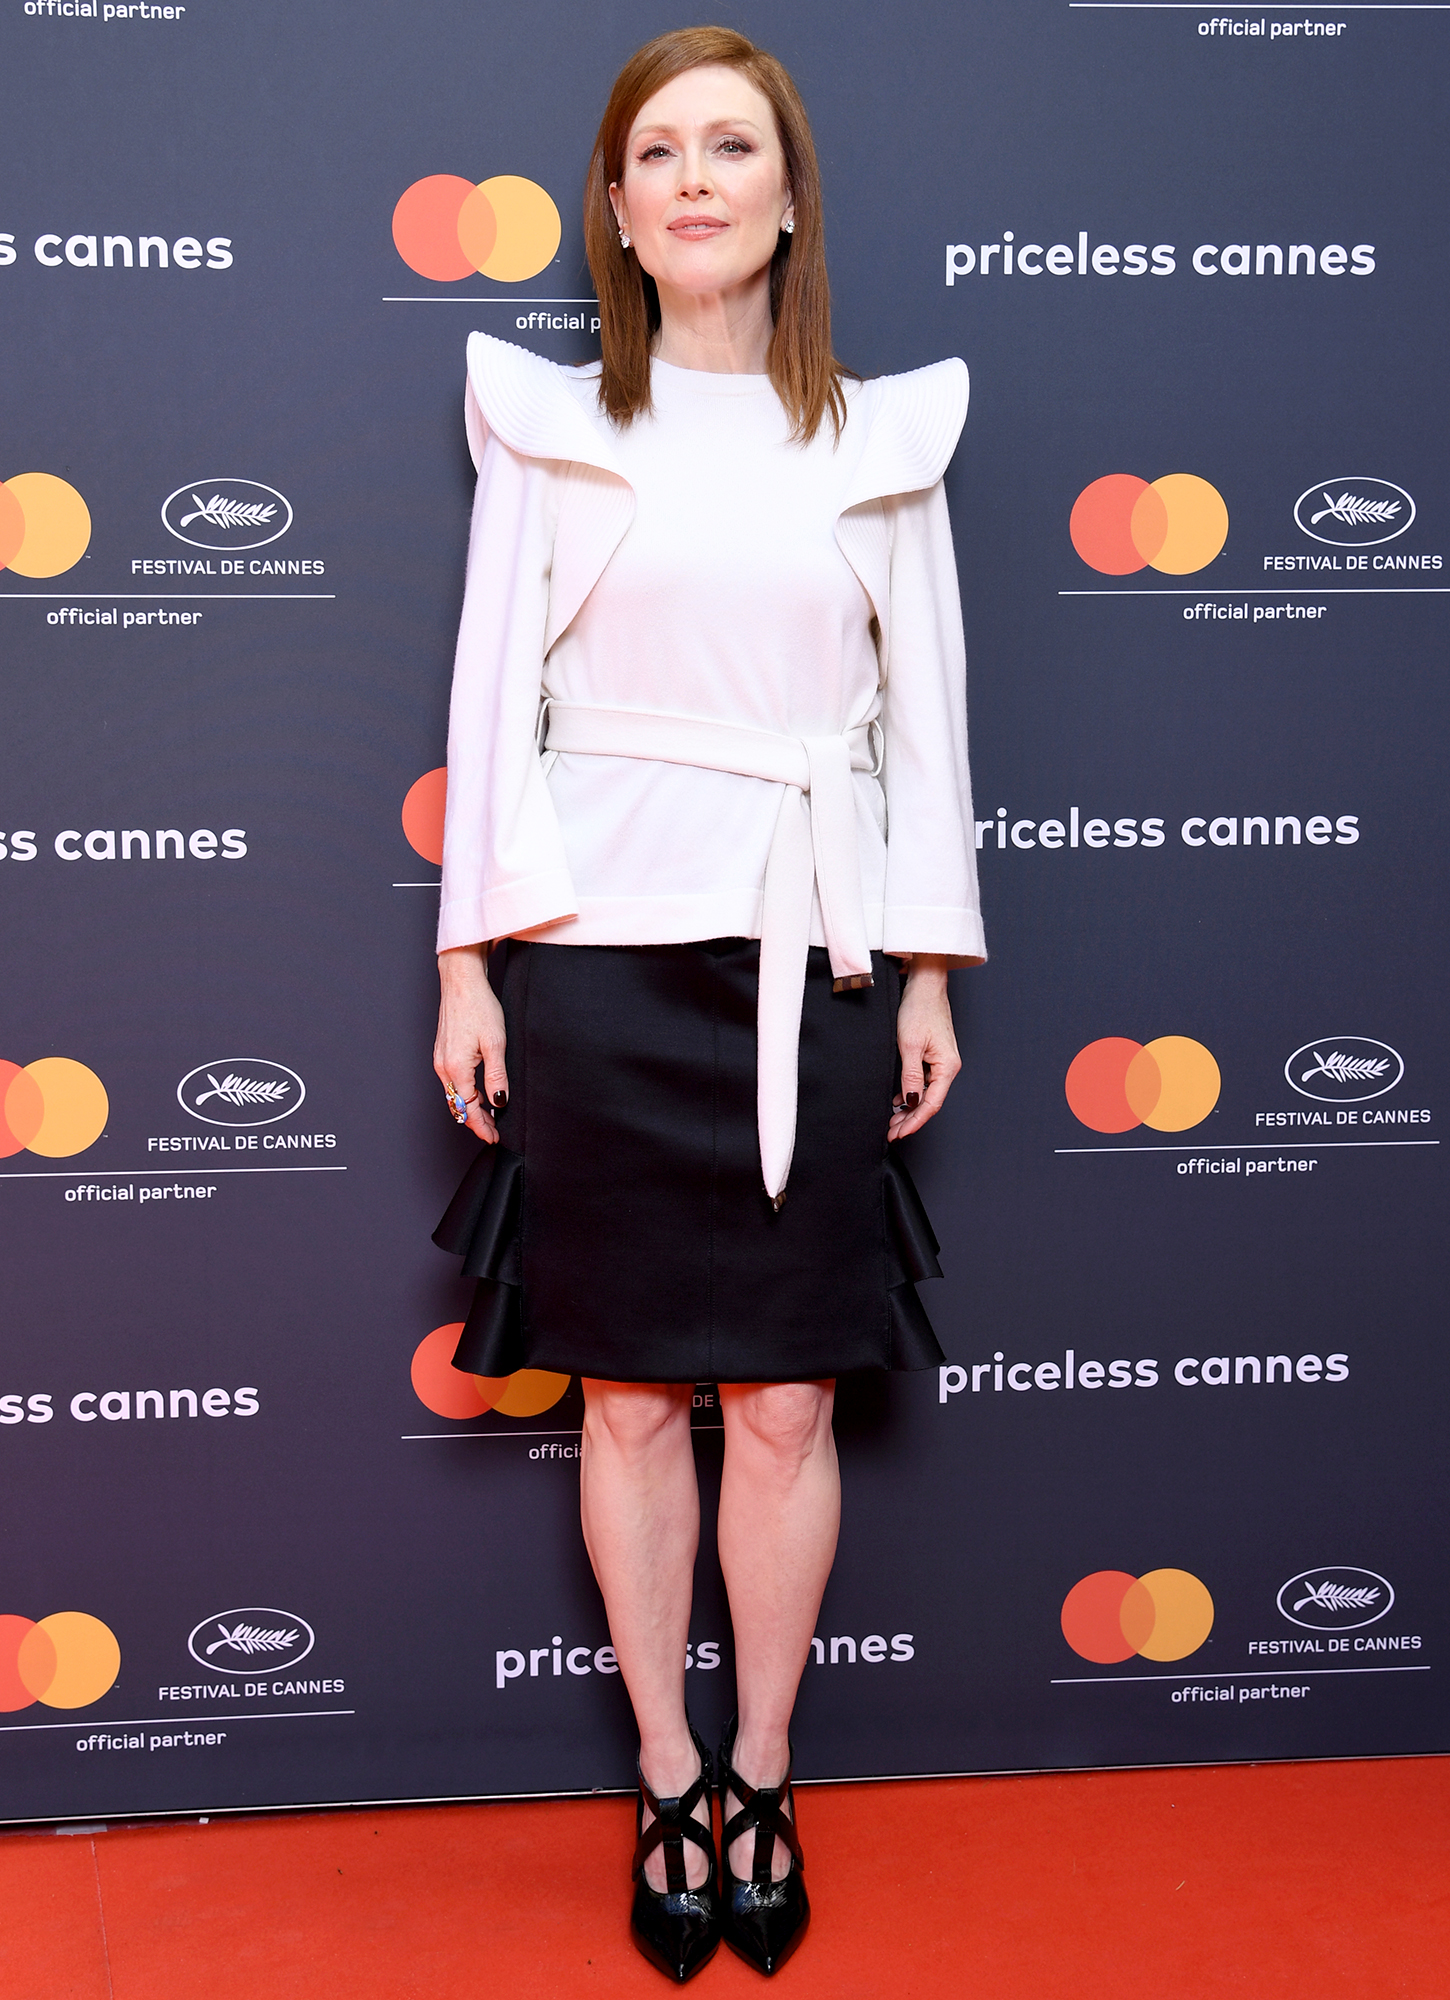 Julianne-Moore - The Oscar winner played with proportion in her structural white top and ruffled miniskirt at the See Life Through A Different Lens photo-call on Wednesday, May 15.